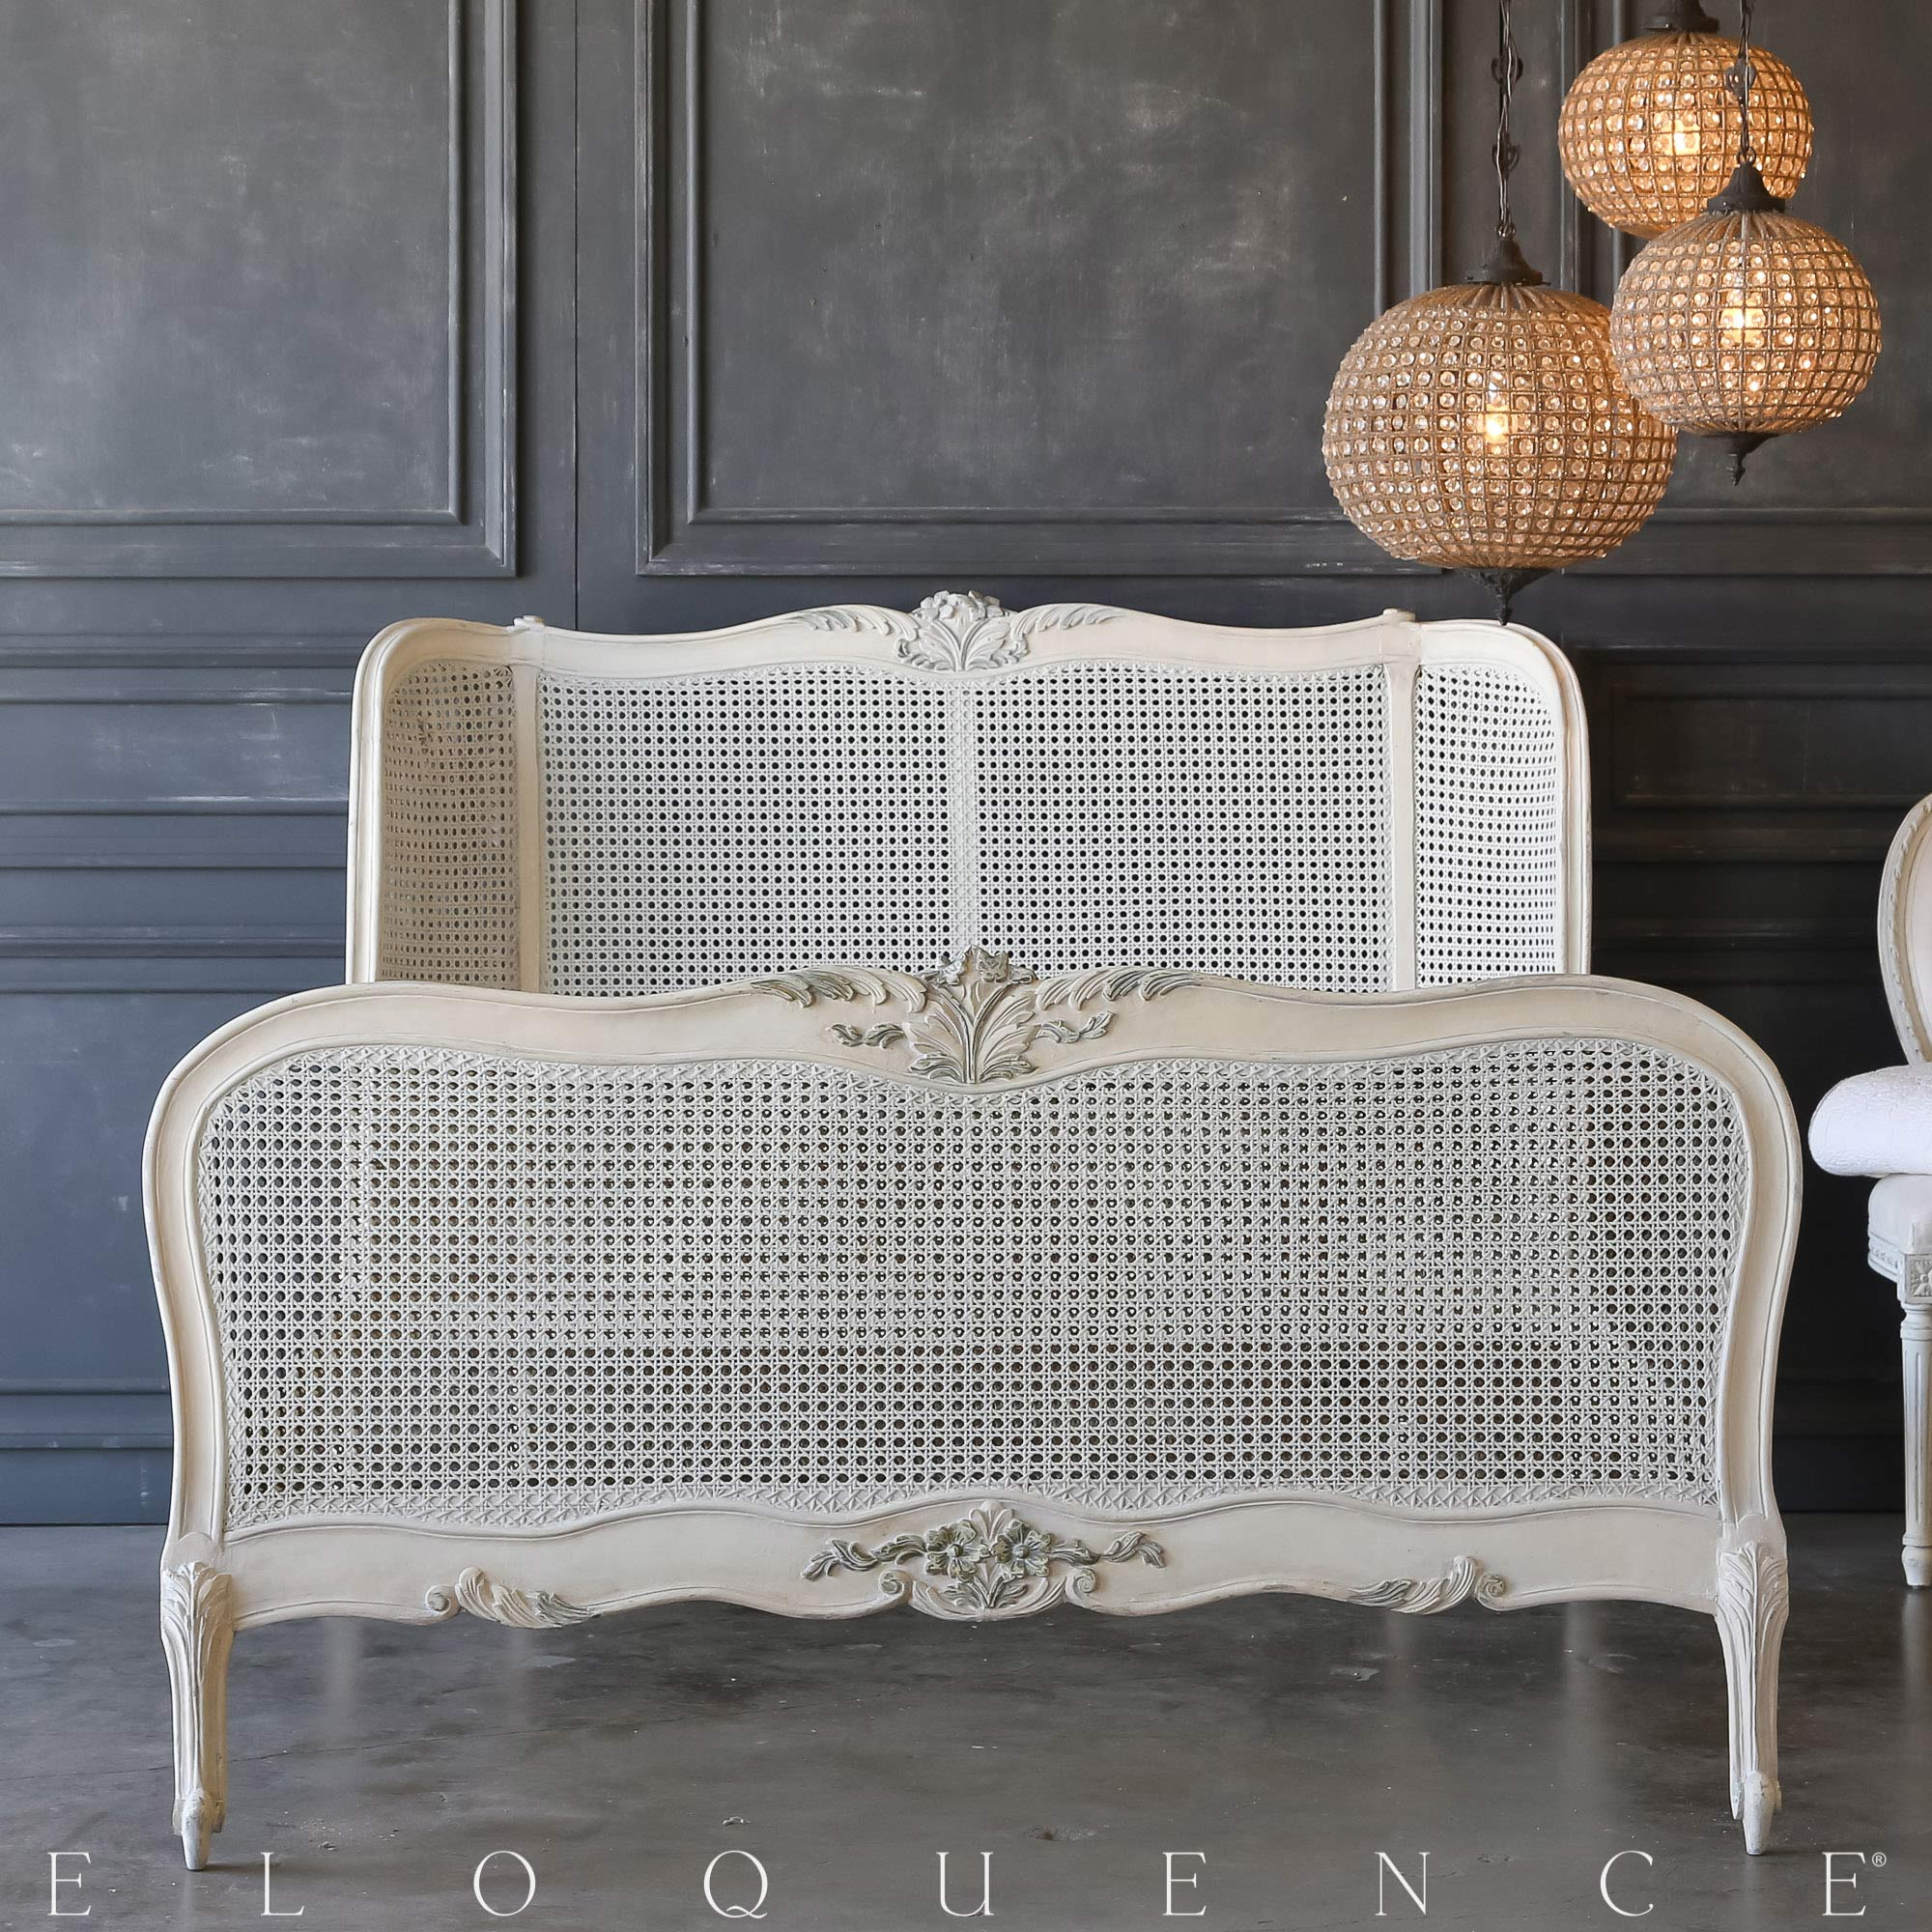 Eloquence® Vintage Peach White Cane Bed: 1940